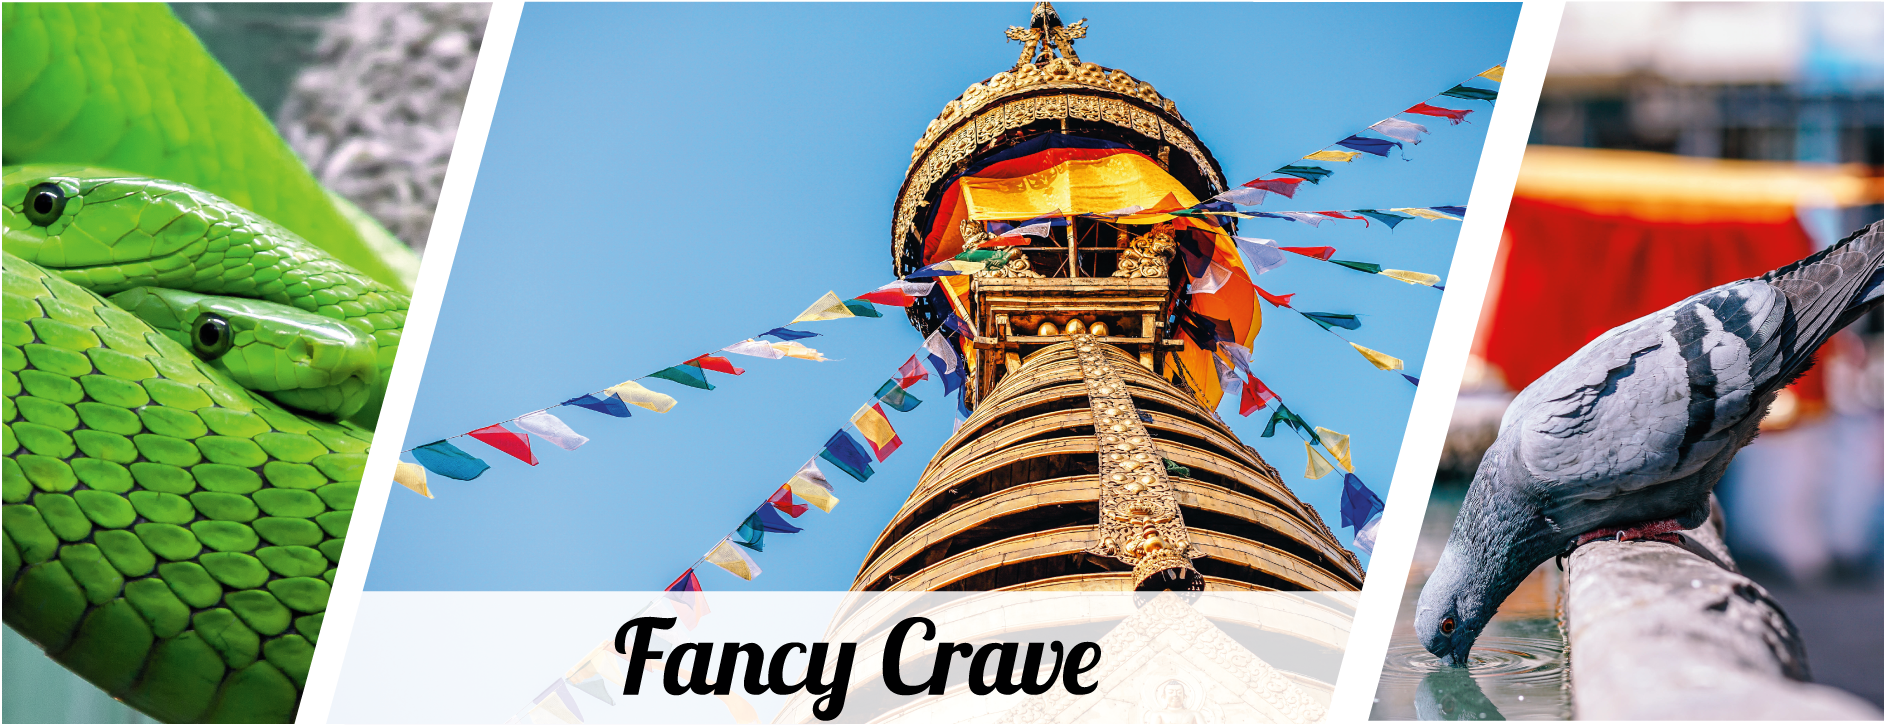 Fancy Crave image gallery